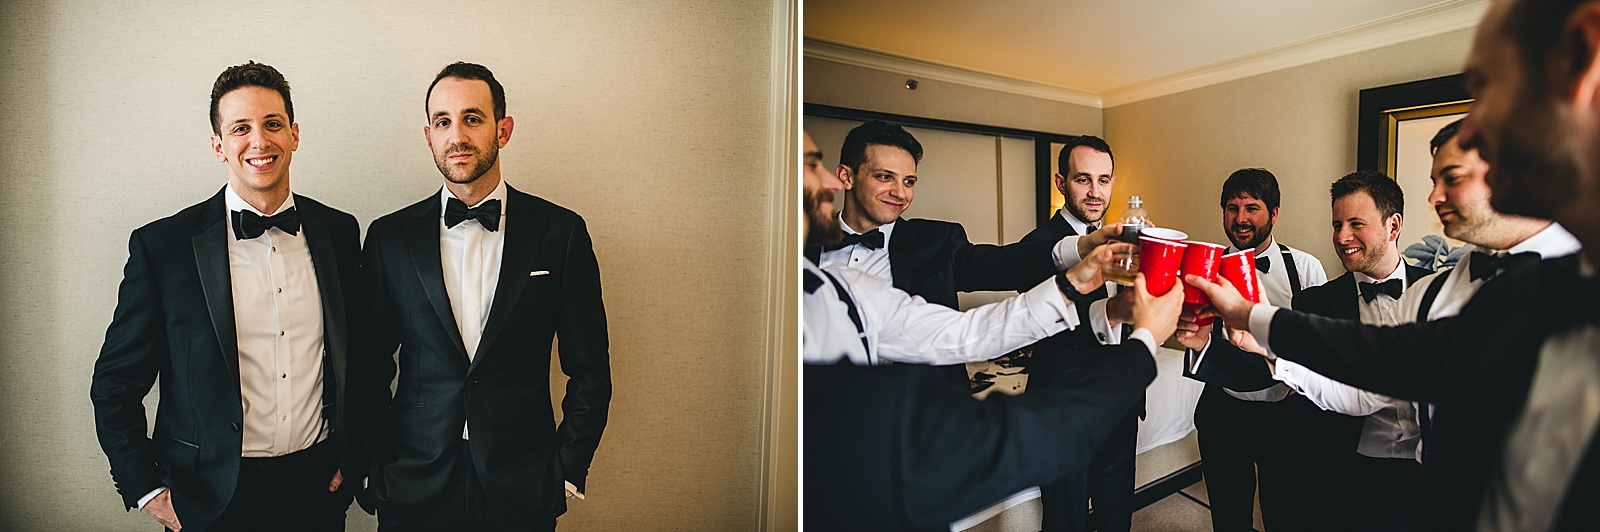 14 fun groomsmen - Susie + Eric's Jewish Wedding at the Peninsula Hotel in Chicago